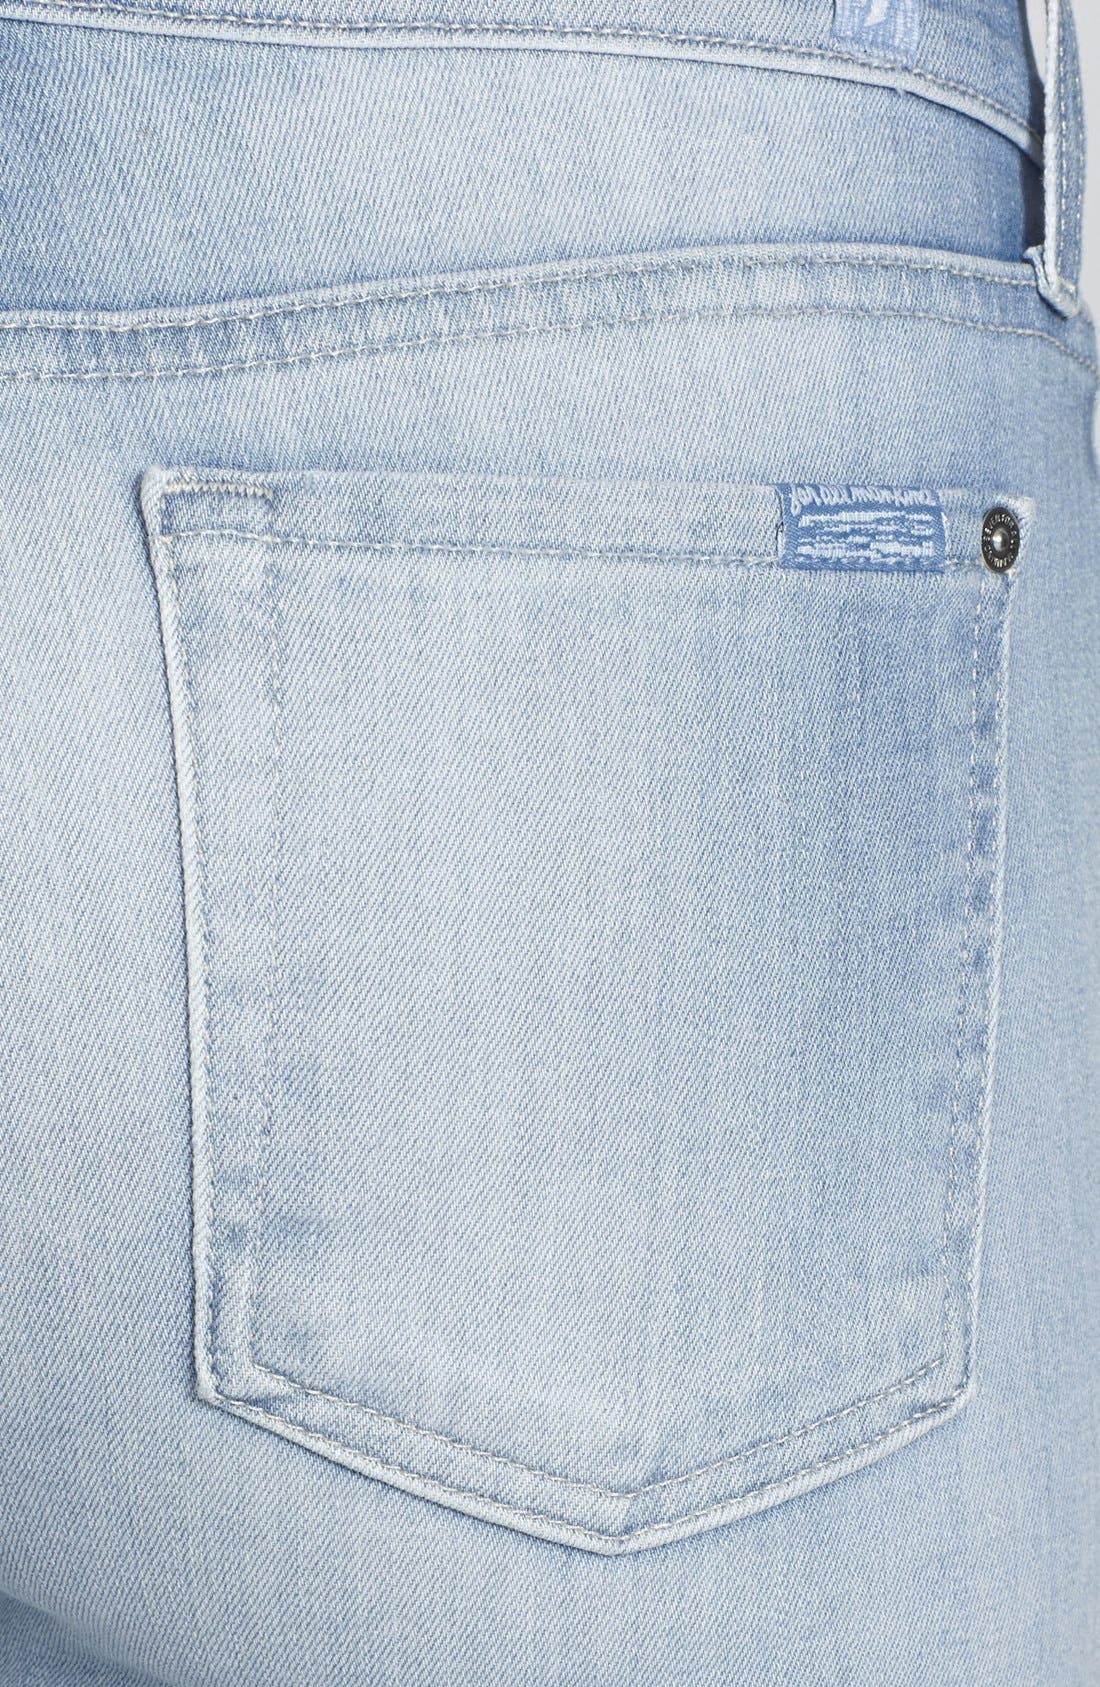 Alternate Image 3  - 7 For All Mankind® 'The Skinny' Mid Rise Jeans (Sky Blue)